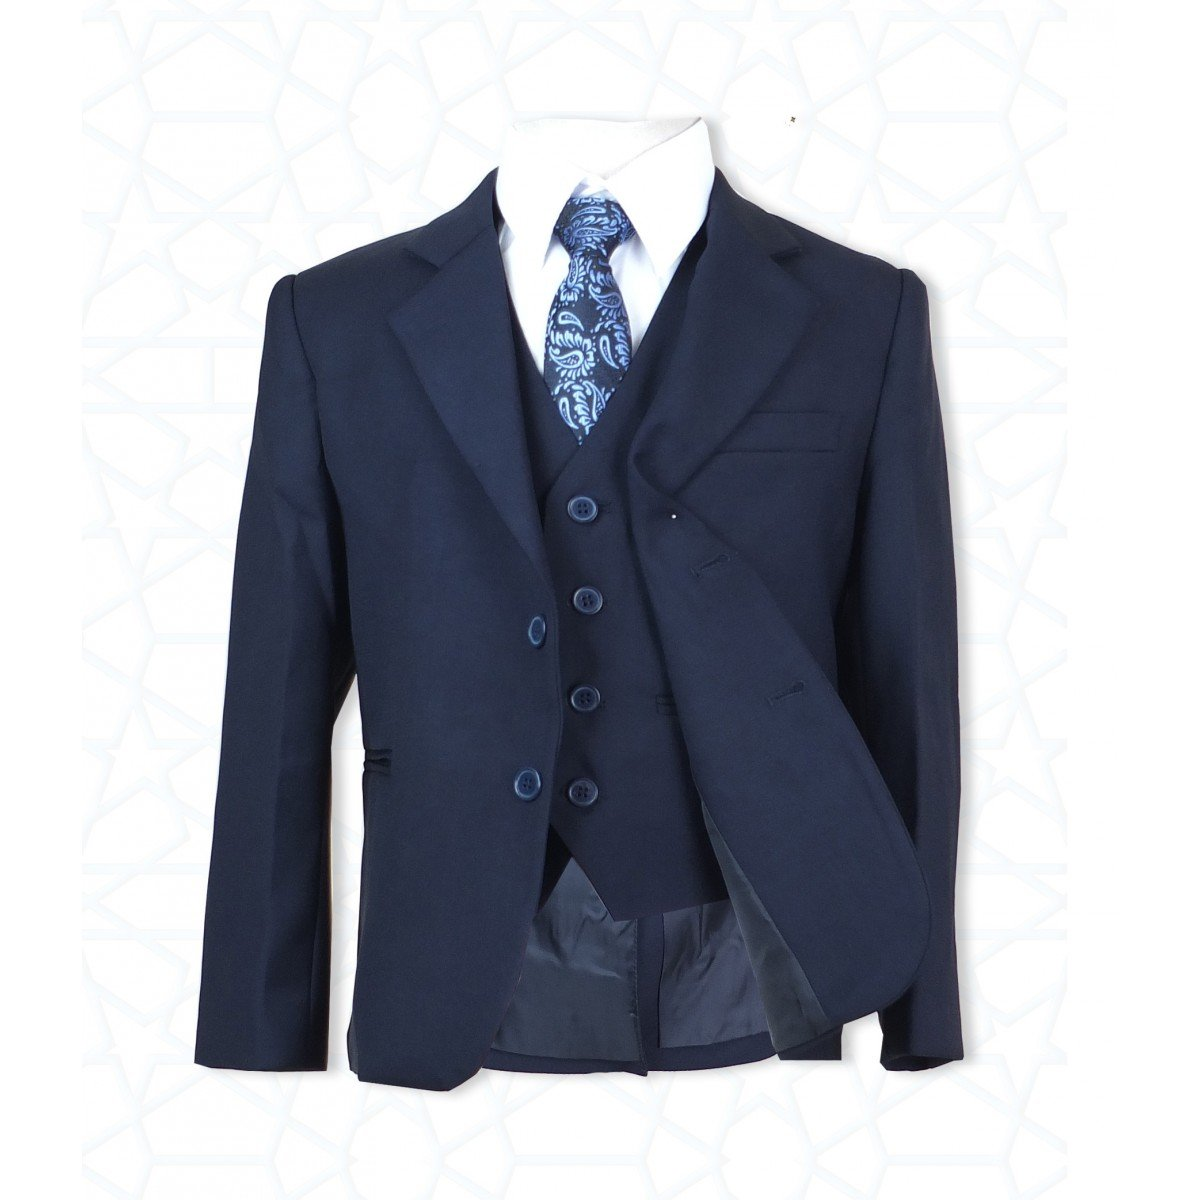 Boys 5 PC All in One Navy or Blue Suit Boy Suits for Formal Occasions